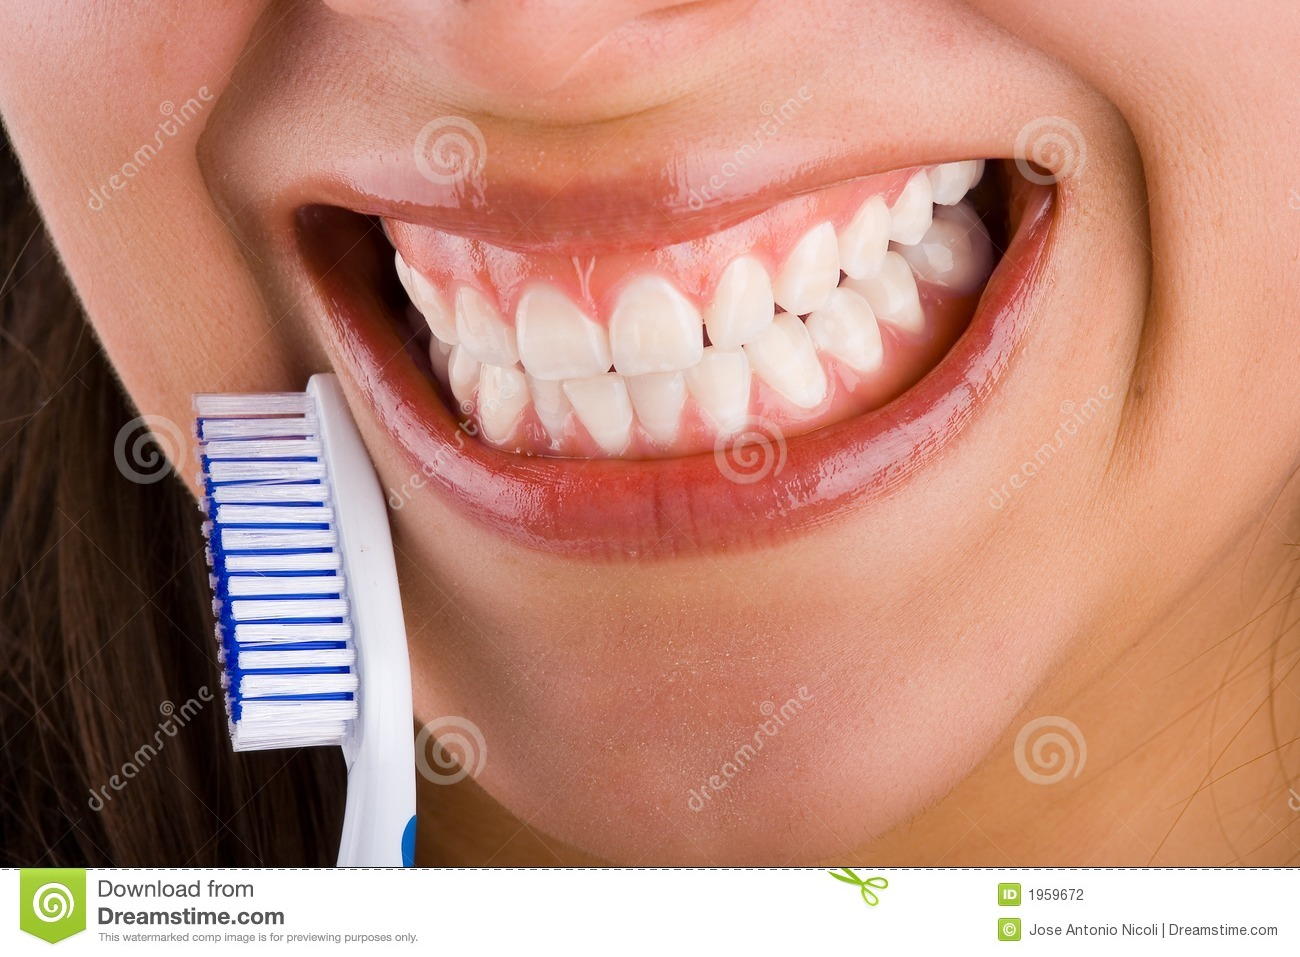 mounth and toothbrush 4 stock photo image of cleanliness 1959672